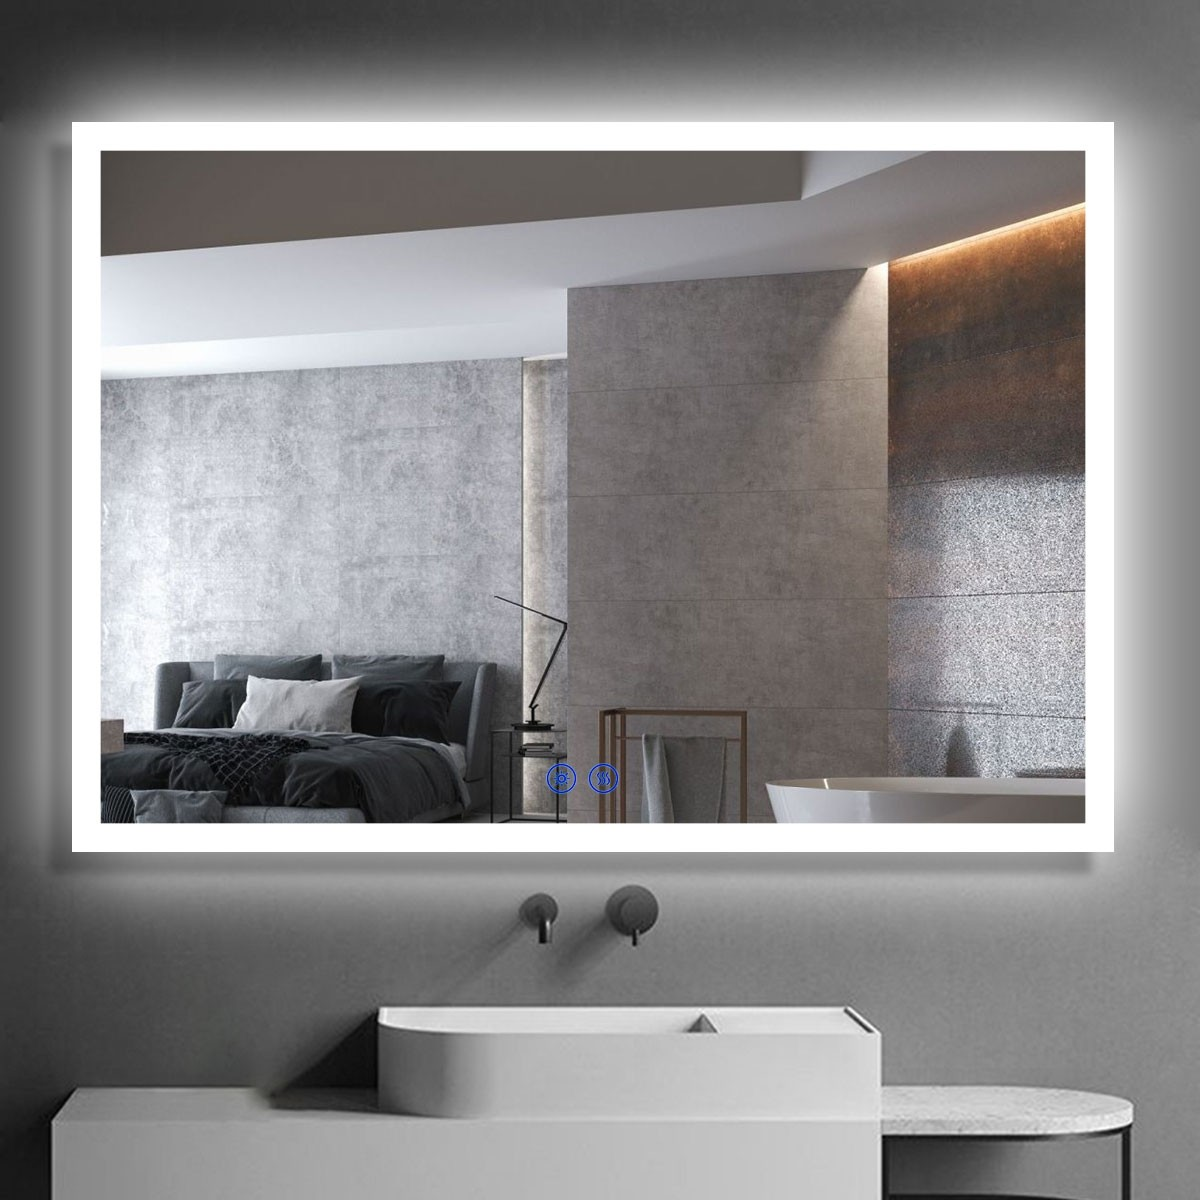 DECORAPORT 40 x 28 Inch LED Bathroom Mirror/Dress Mirror with Touch Button, Anti Fog, Dimmable, Vertical & Horizontal Mount (NT10-4028)